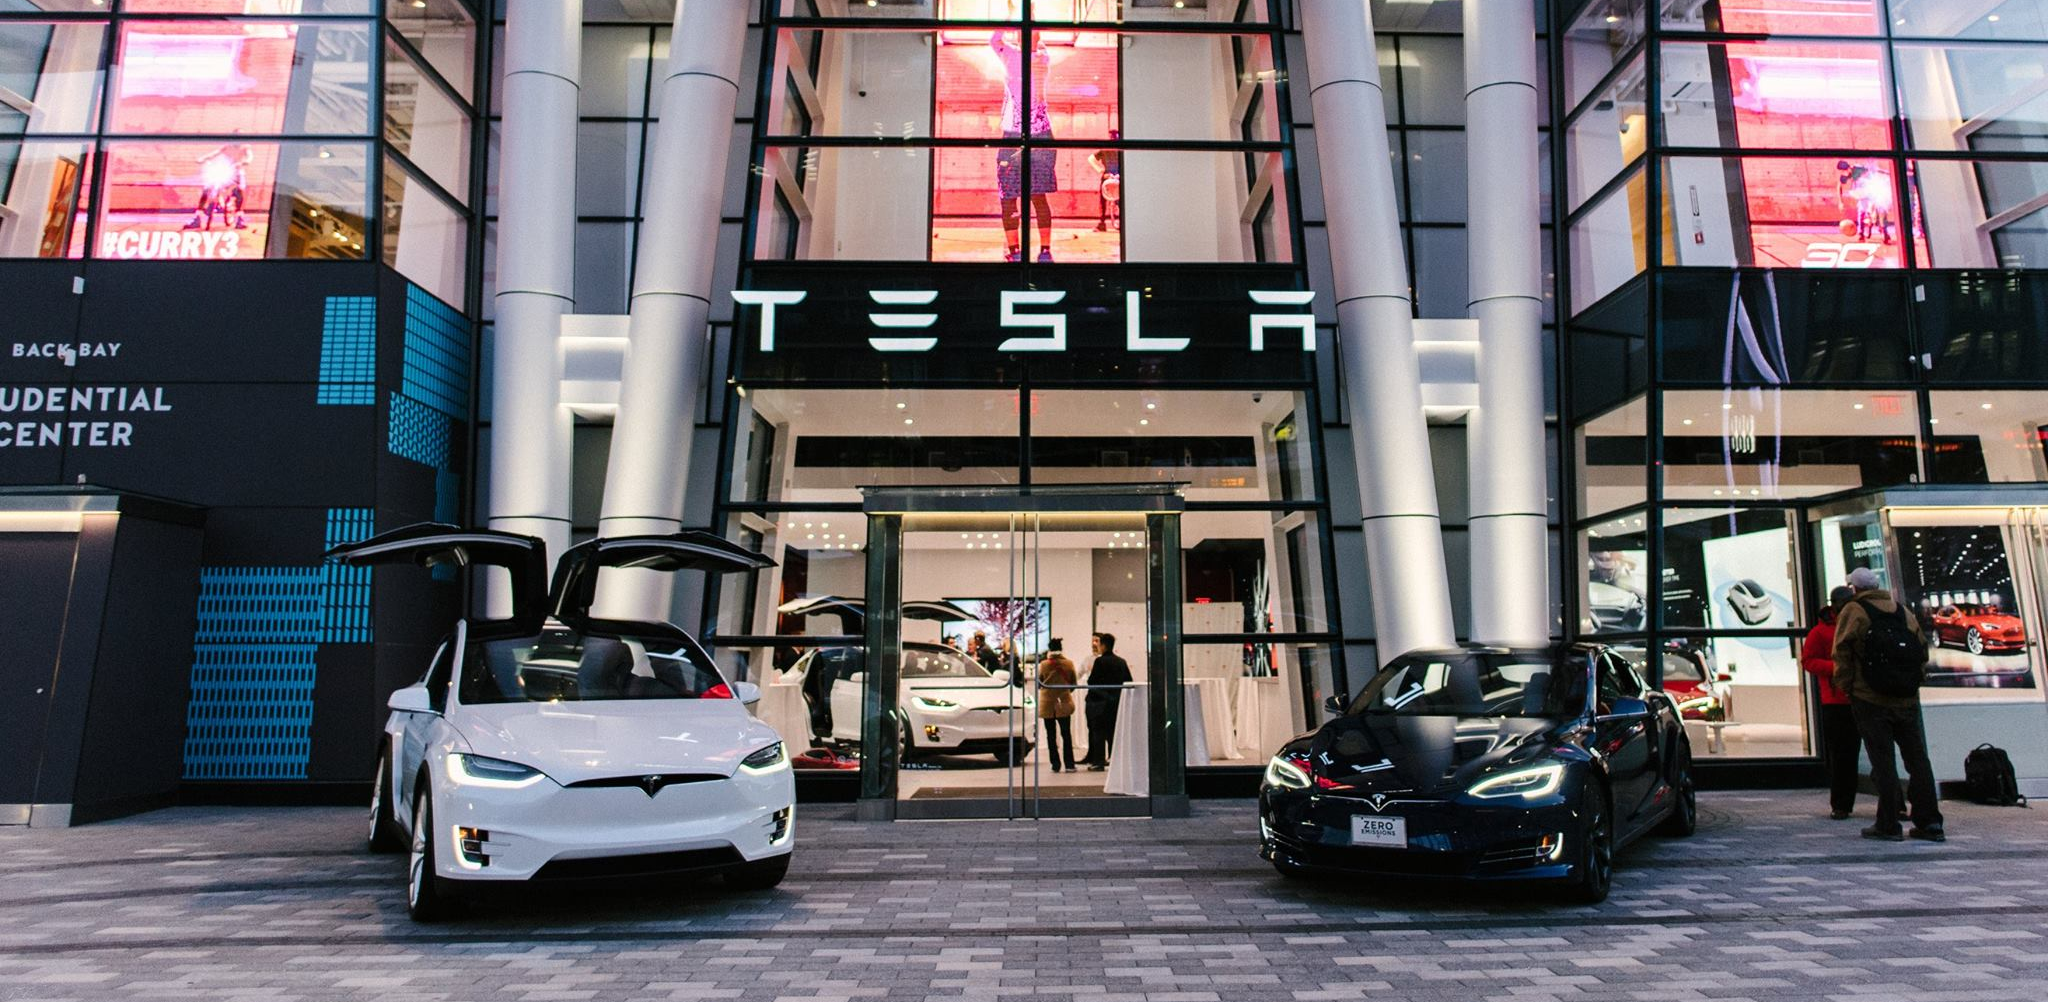 Tesla gets sued by car dealers afraid to compete with them - Electrek